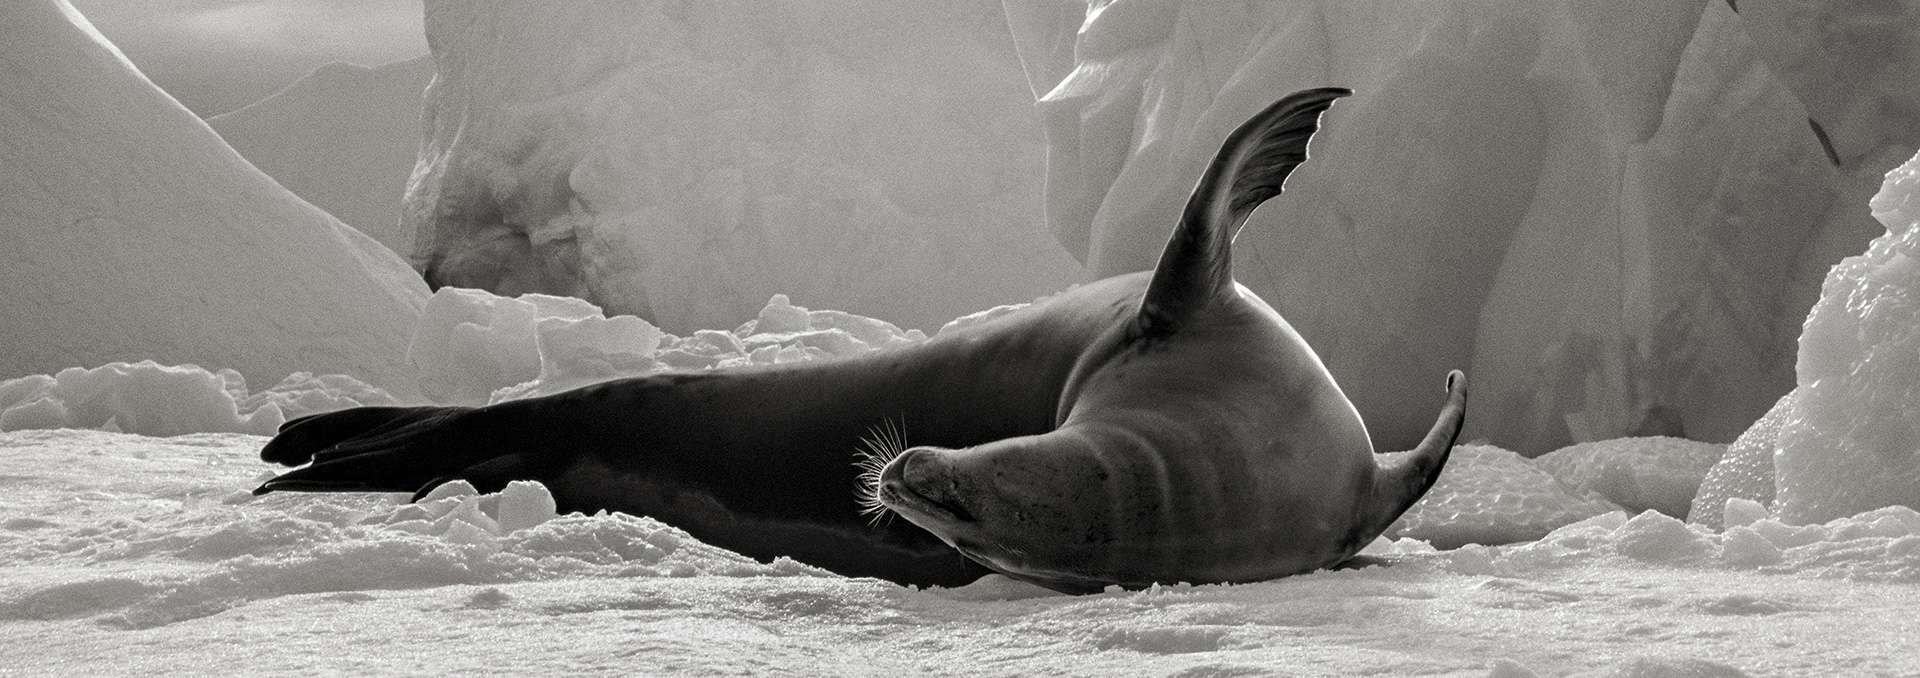 Gilles Martin's photograph : crabeater seal from Antarctica, Struggle for life